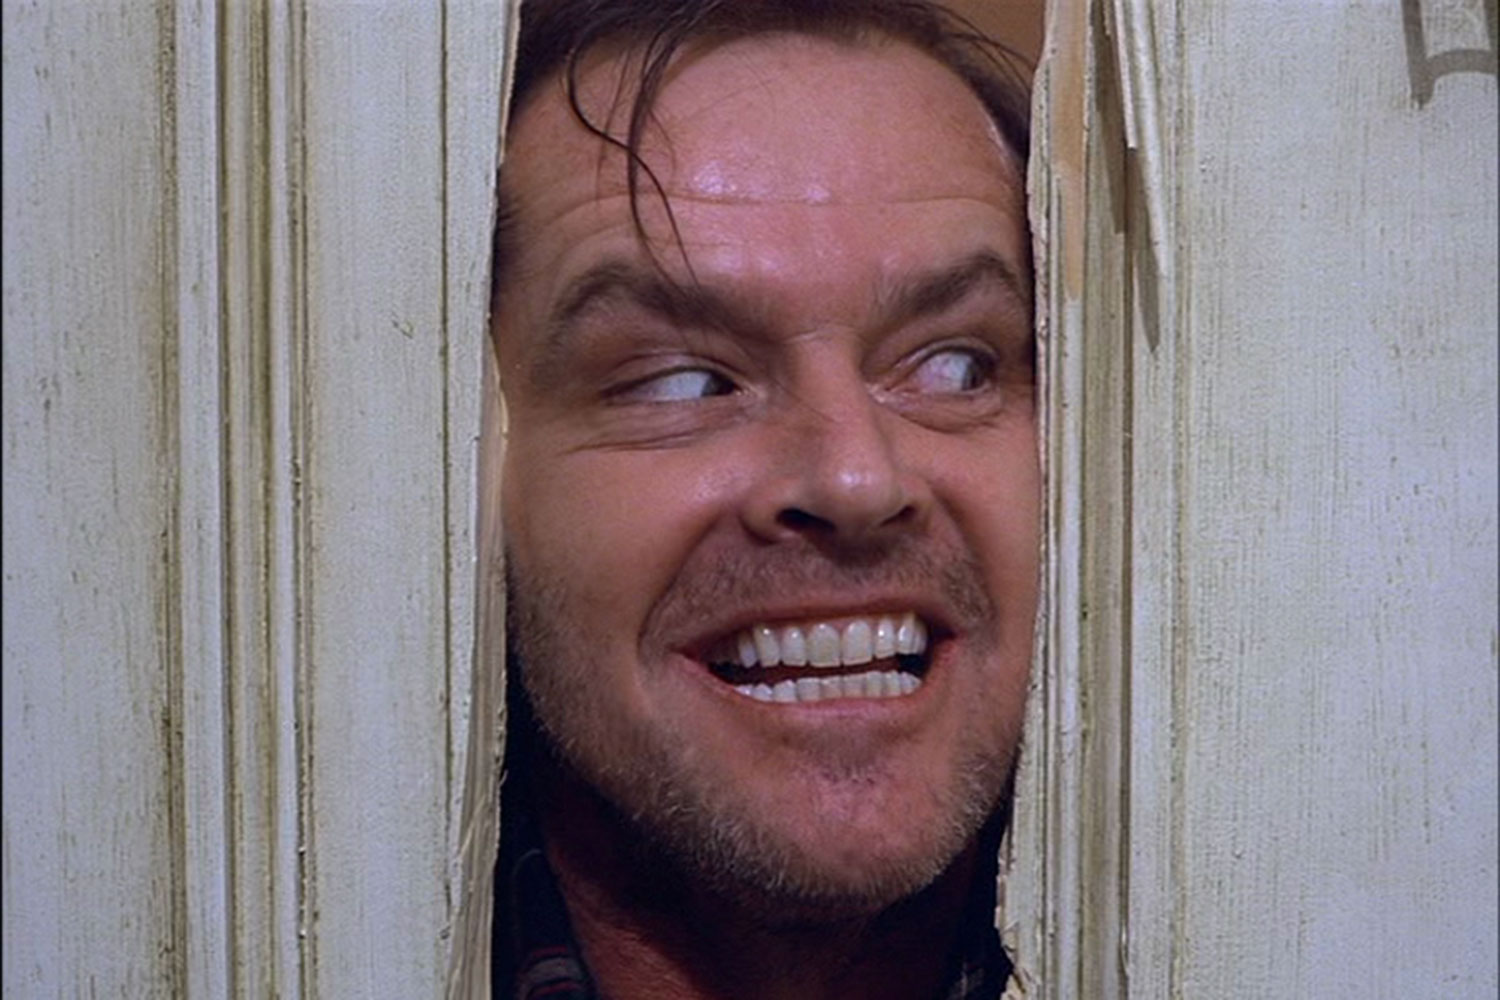 Jack Nicholson bursts through the door, trying to break in.